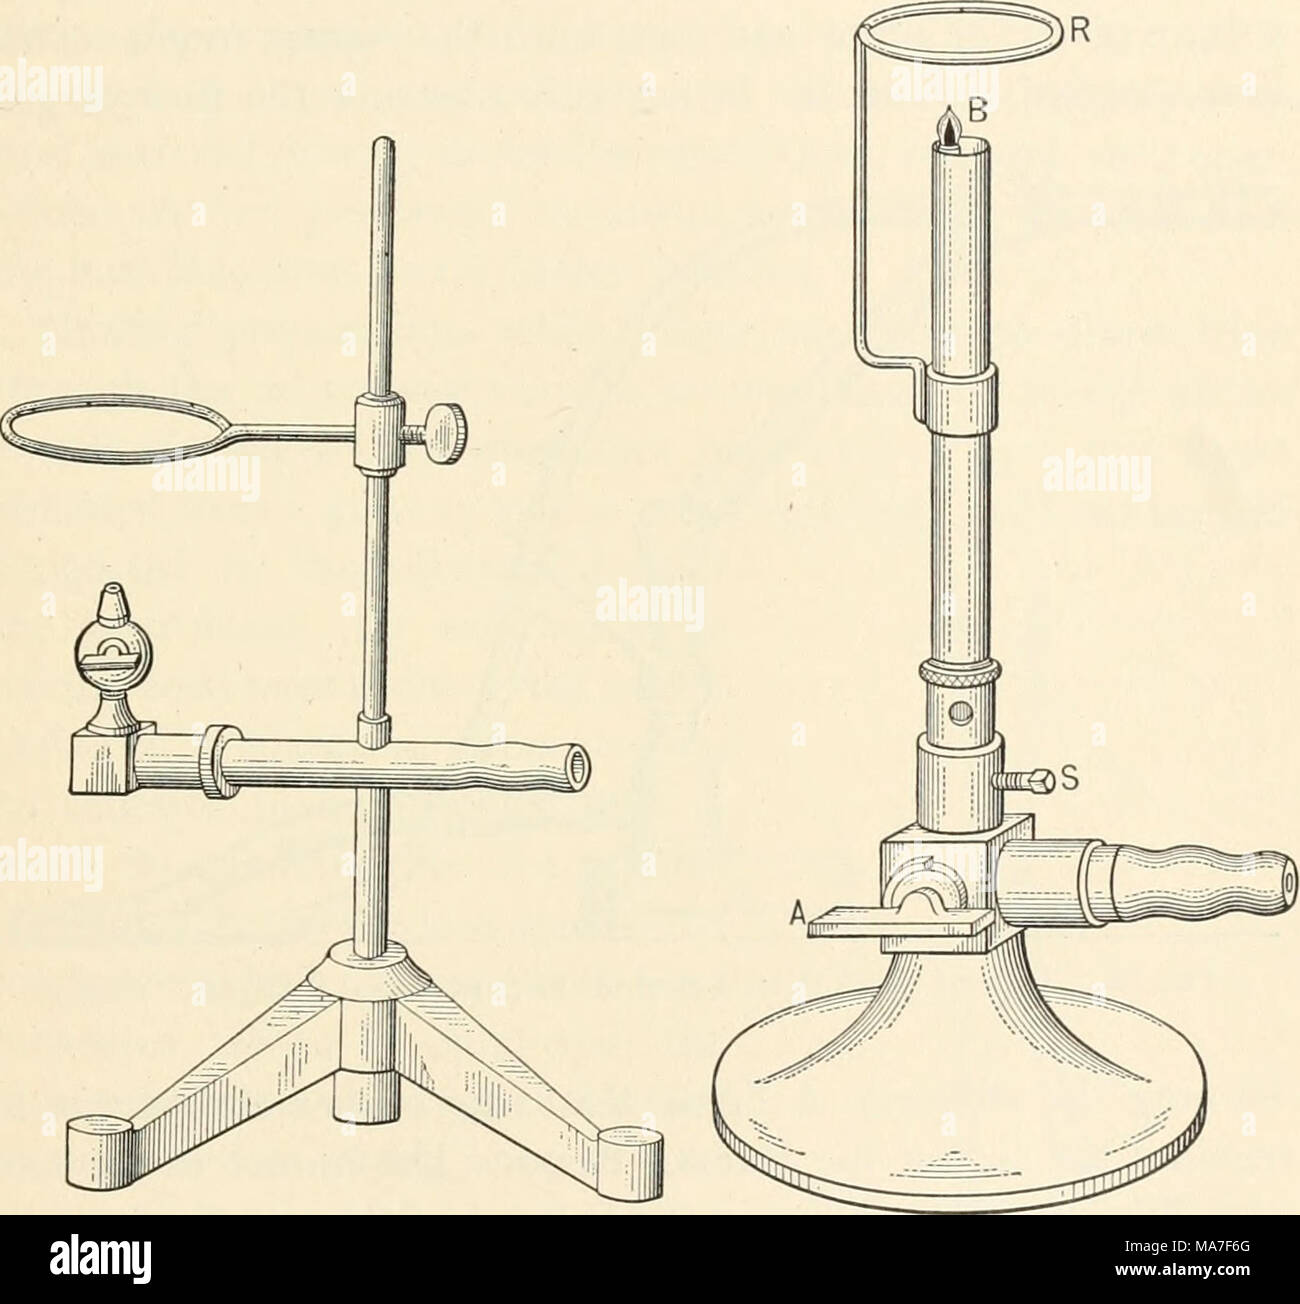 """. Elementary chemical microscopy . Fig. 86. Burner for Microchemical Analysis. Fig. 87. Burner for Microchemical Analysis. (Xi) only moderate heating of very small amounts of material. Since, however, microchemical methods often require a preliminary handling of several grams or cubic centimeters of substance, the burner shown in Fig. 87 will be found to afford a wider range of usefulness. It also occupies less space upon the work table. It consists of an ordinary Bunsen burner provided with a side- tube for a """" reserve """" or """" pilot """" flame. In the form illustrated, - Stock Image"""